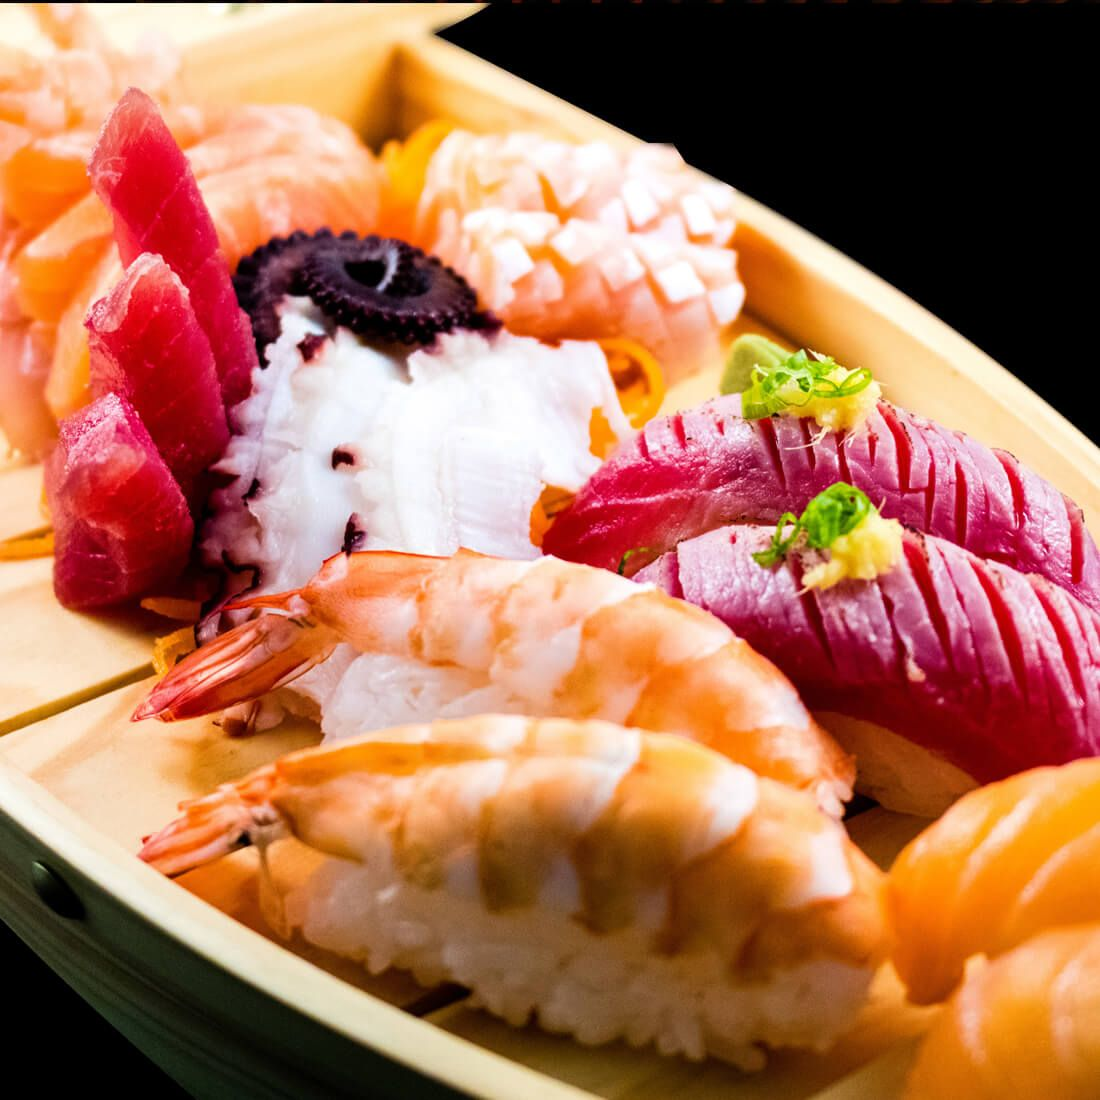 SAKAE SUSHI BAR Restaurant - and Peruvian Food NIKKEI AND JAPANESE CUISINE - SANTIAGO DE SURCO - MESA 24/7 Guide | LIMA - Peru